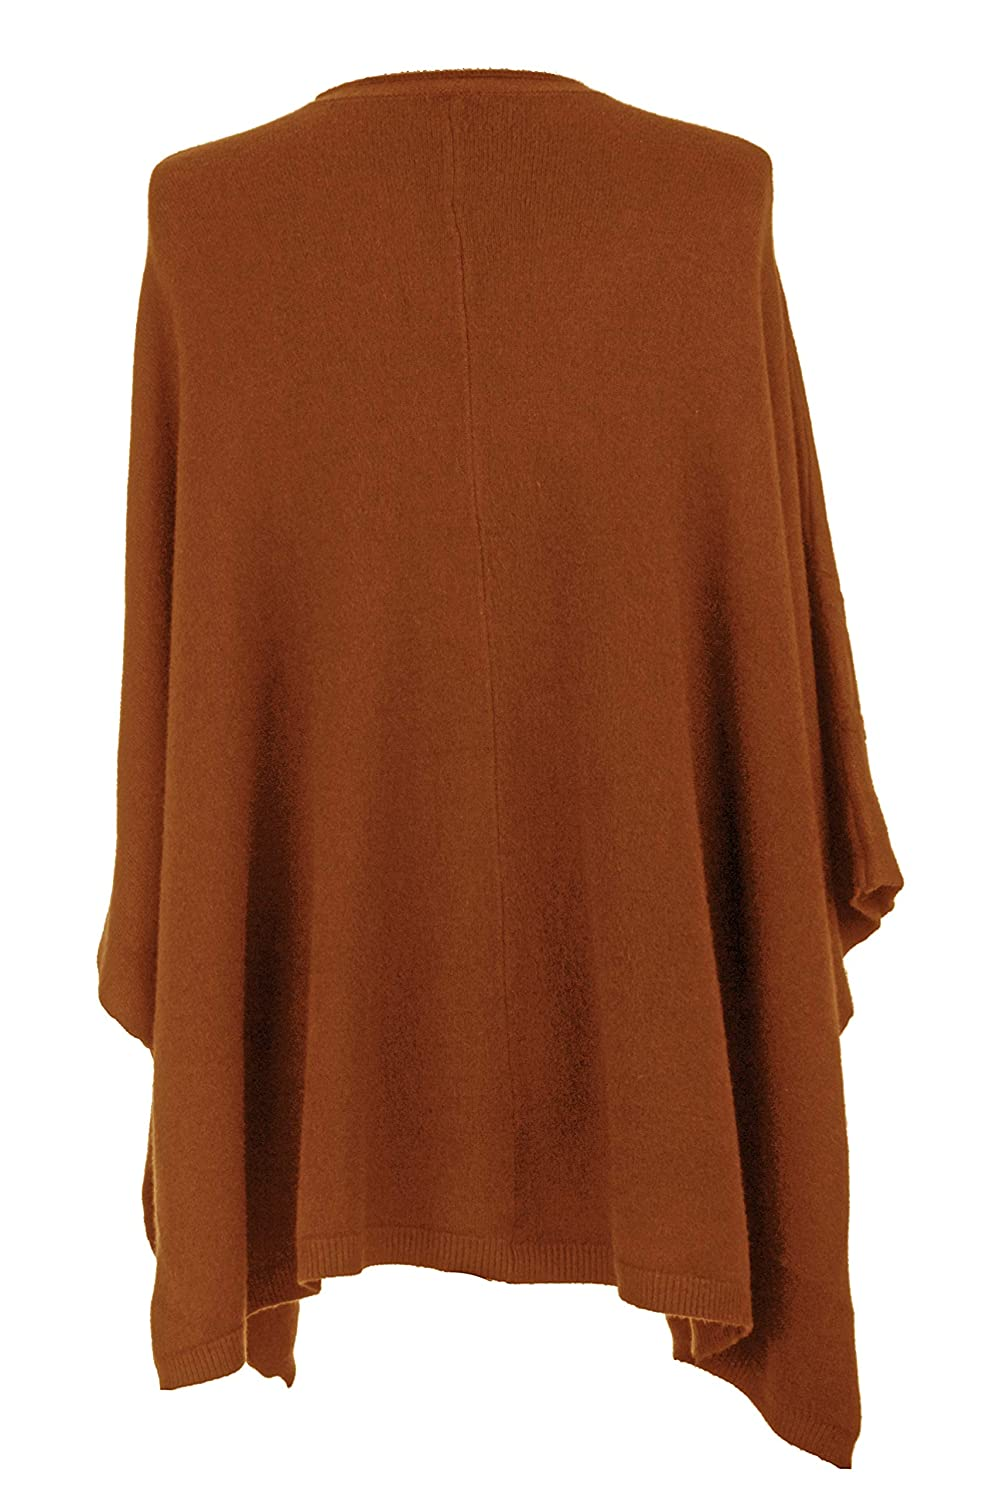 TEXTURE Ladies Womens Italian Lagenlook Button Detail 2 Pocket Batwing Knit Poncho Cape Top One Size